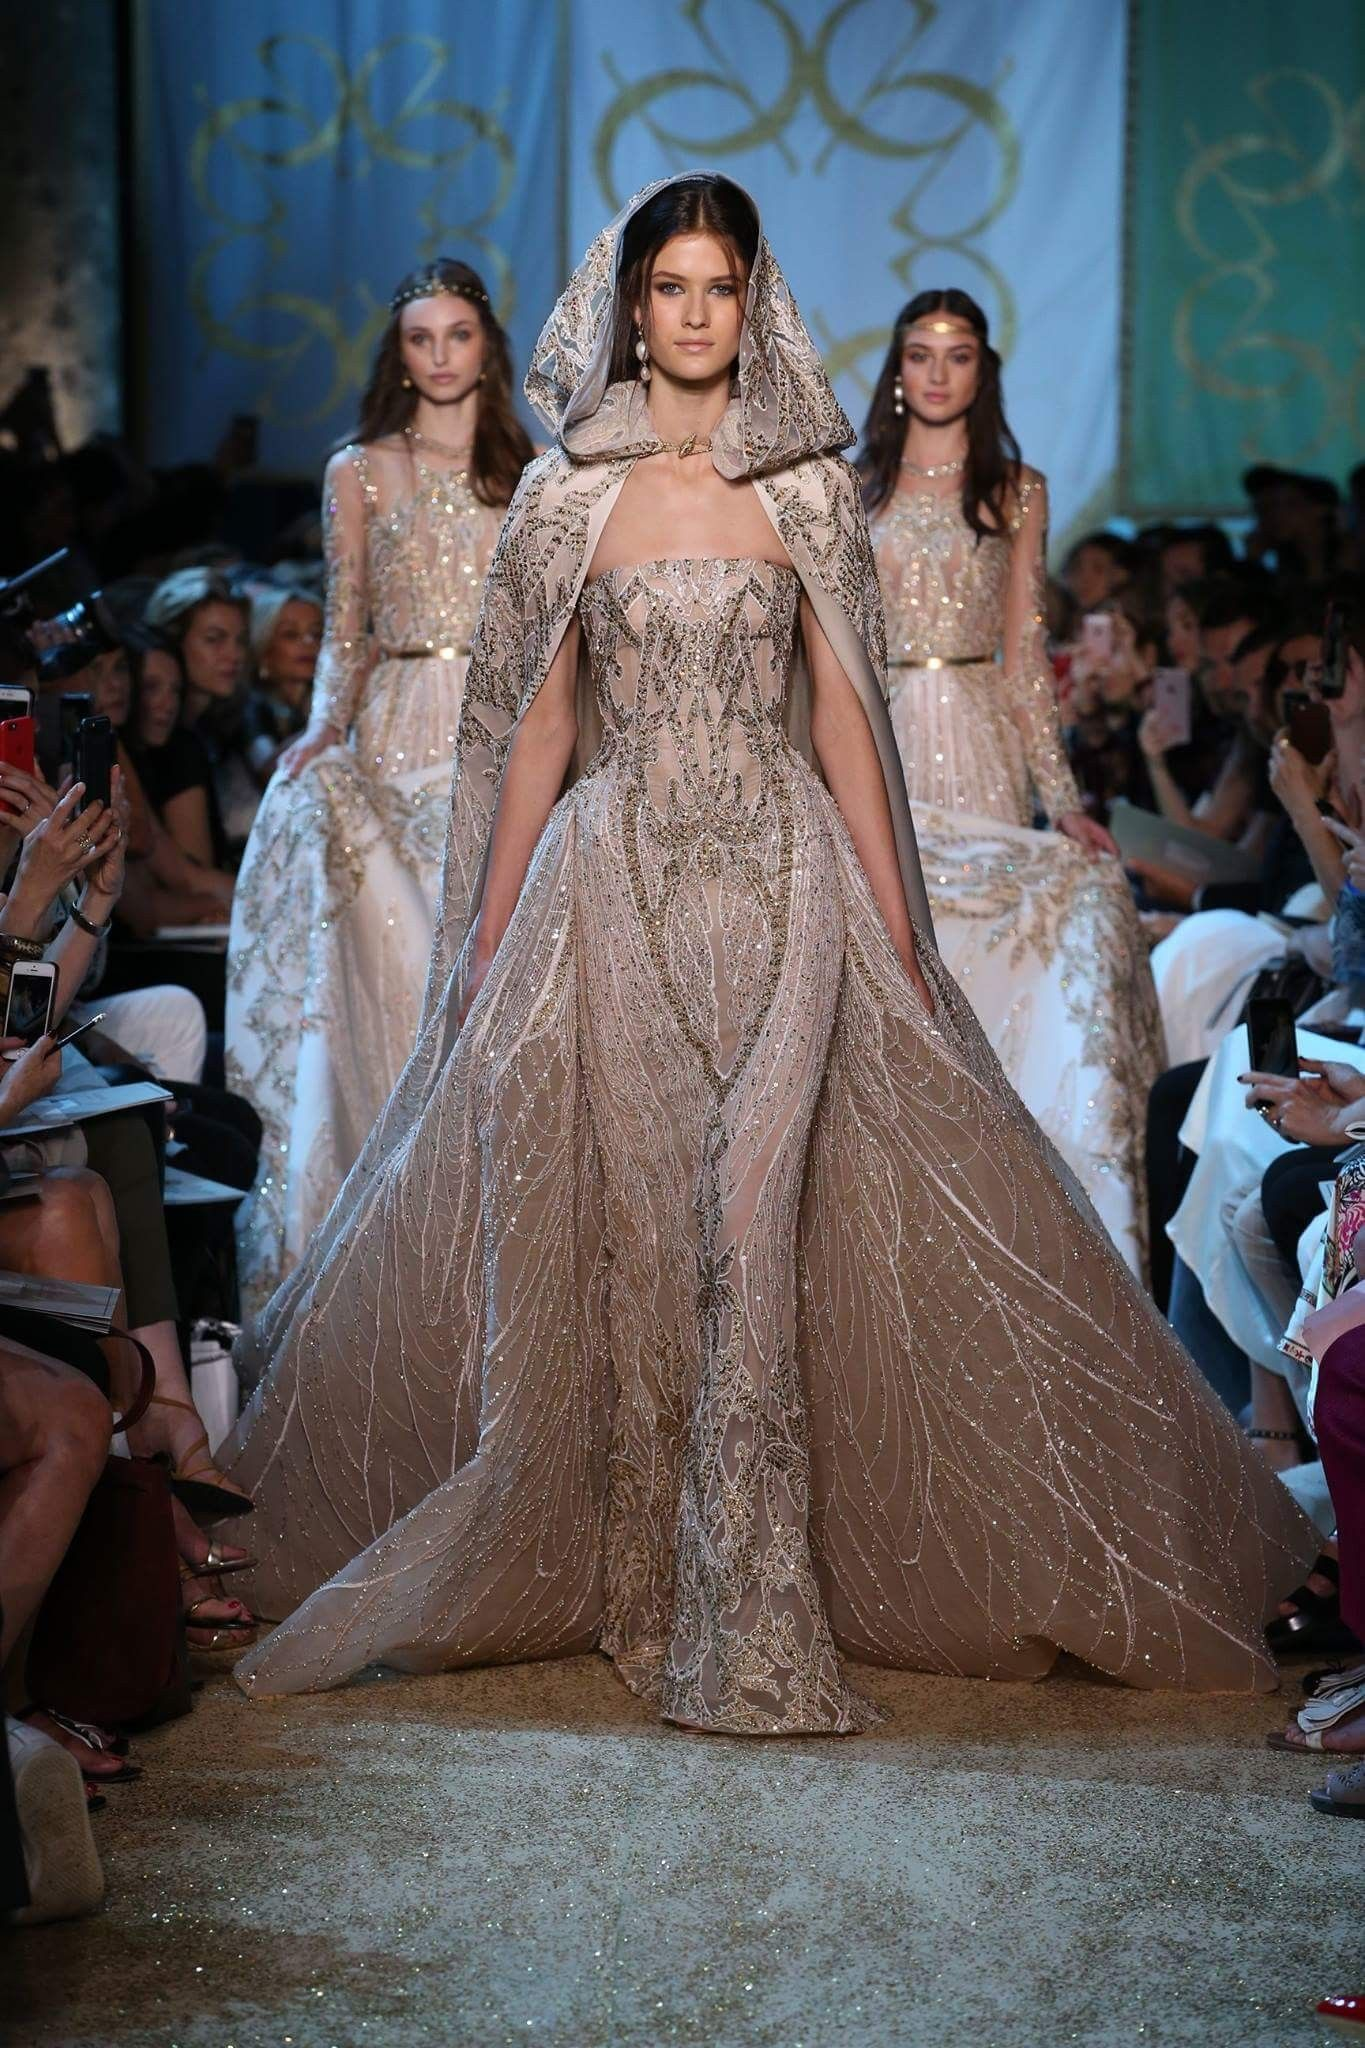 Elie Saab Haute Couture Fall 2017/18 | DESIGNER GOWNS | Pinterest ...